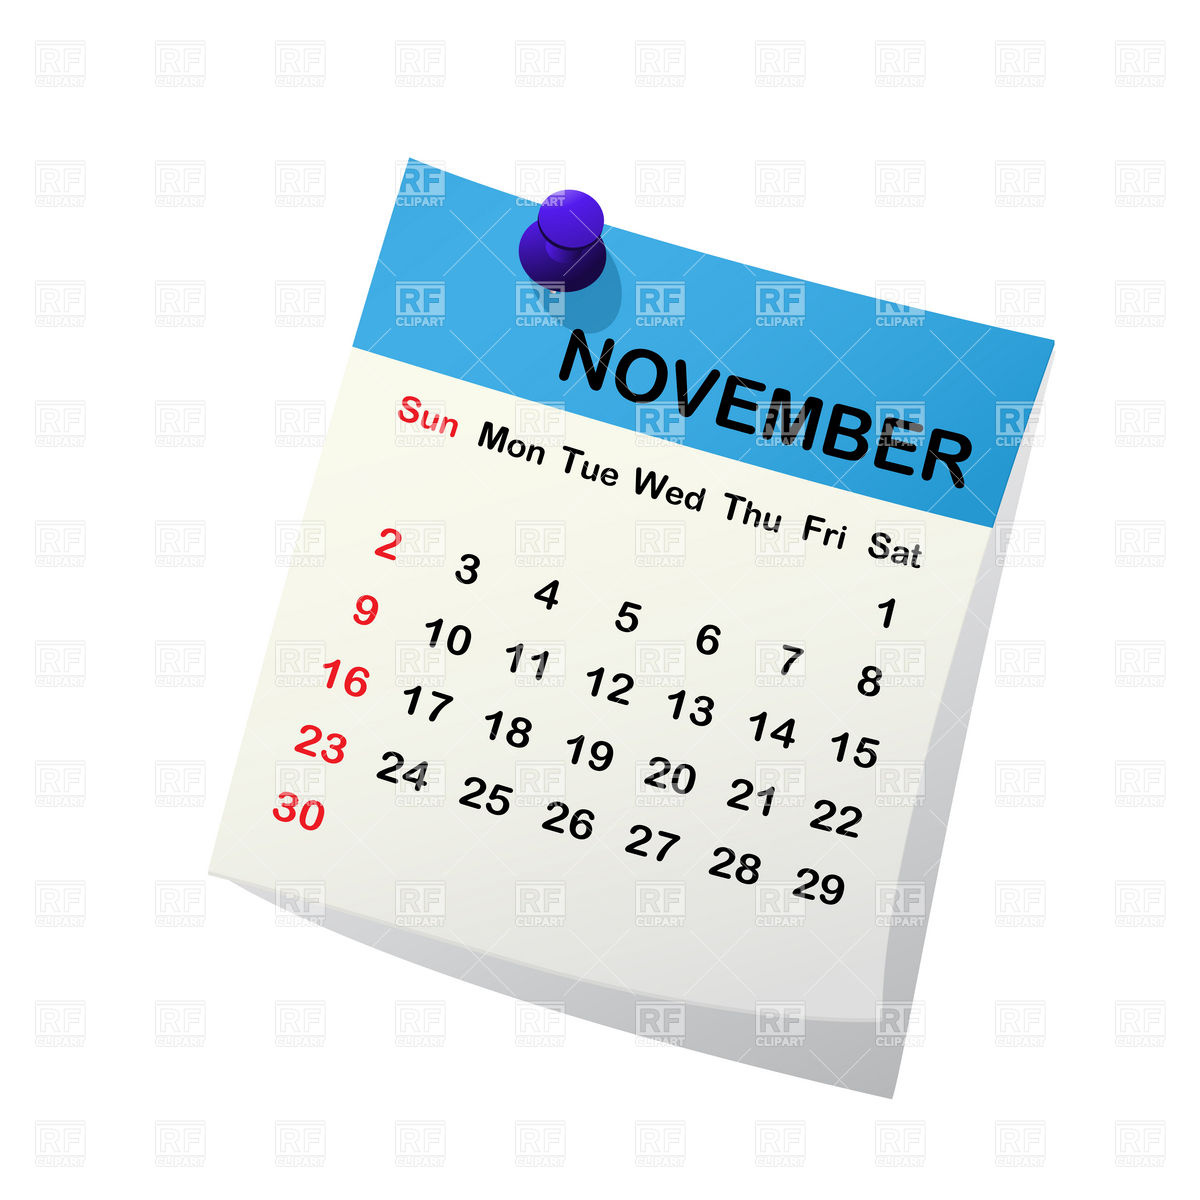 November 2014 Month Calendar Download Royalty Free Vector Clipart